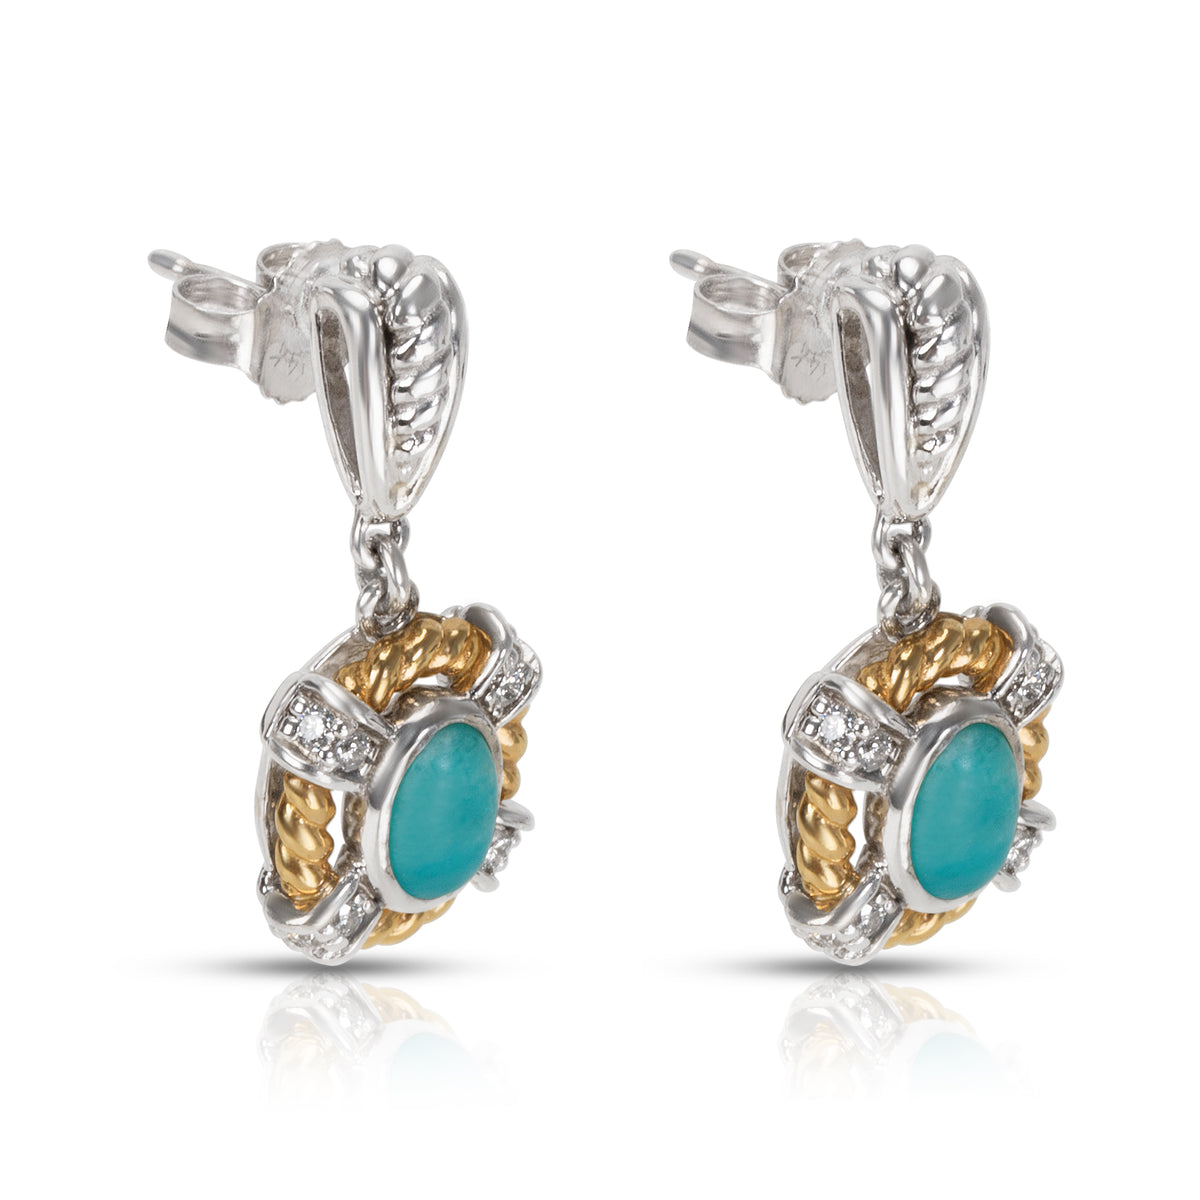 BRAND NEW Amazonite & Diamond Fashion Earrings in 14k Two-Tone Gold (0.19 CTW)